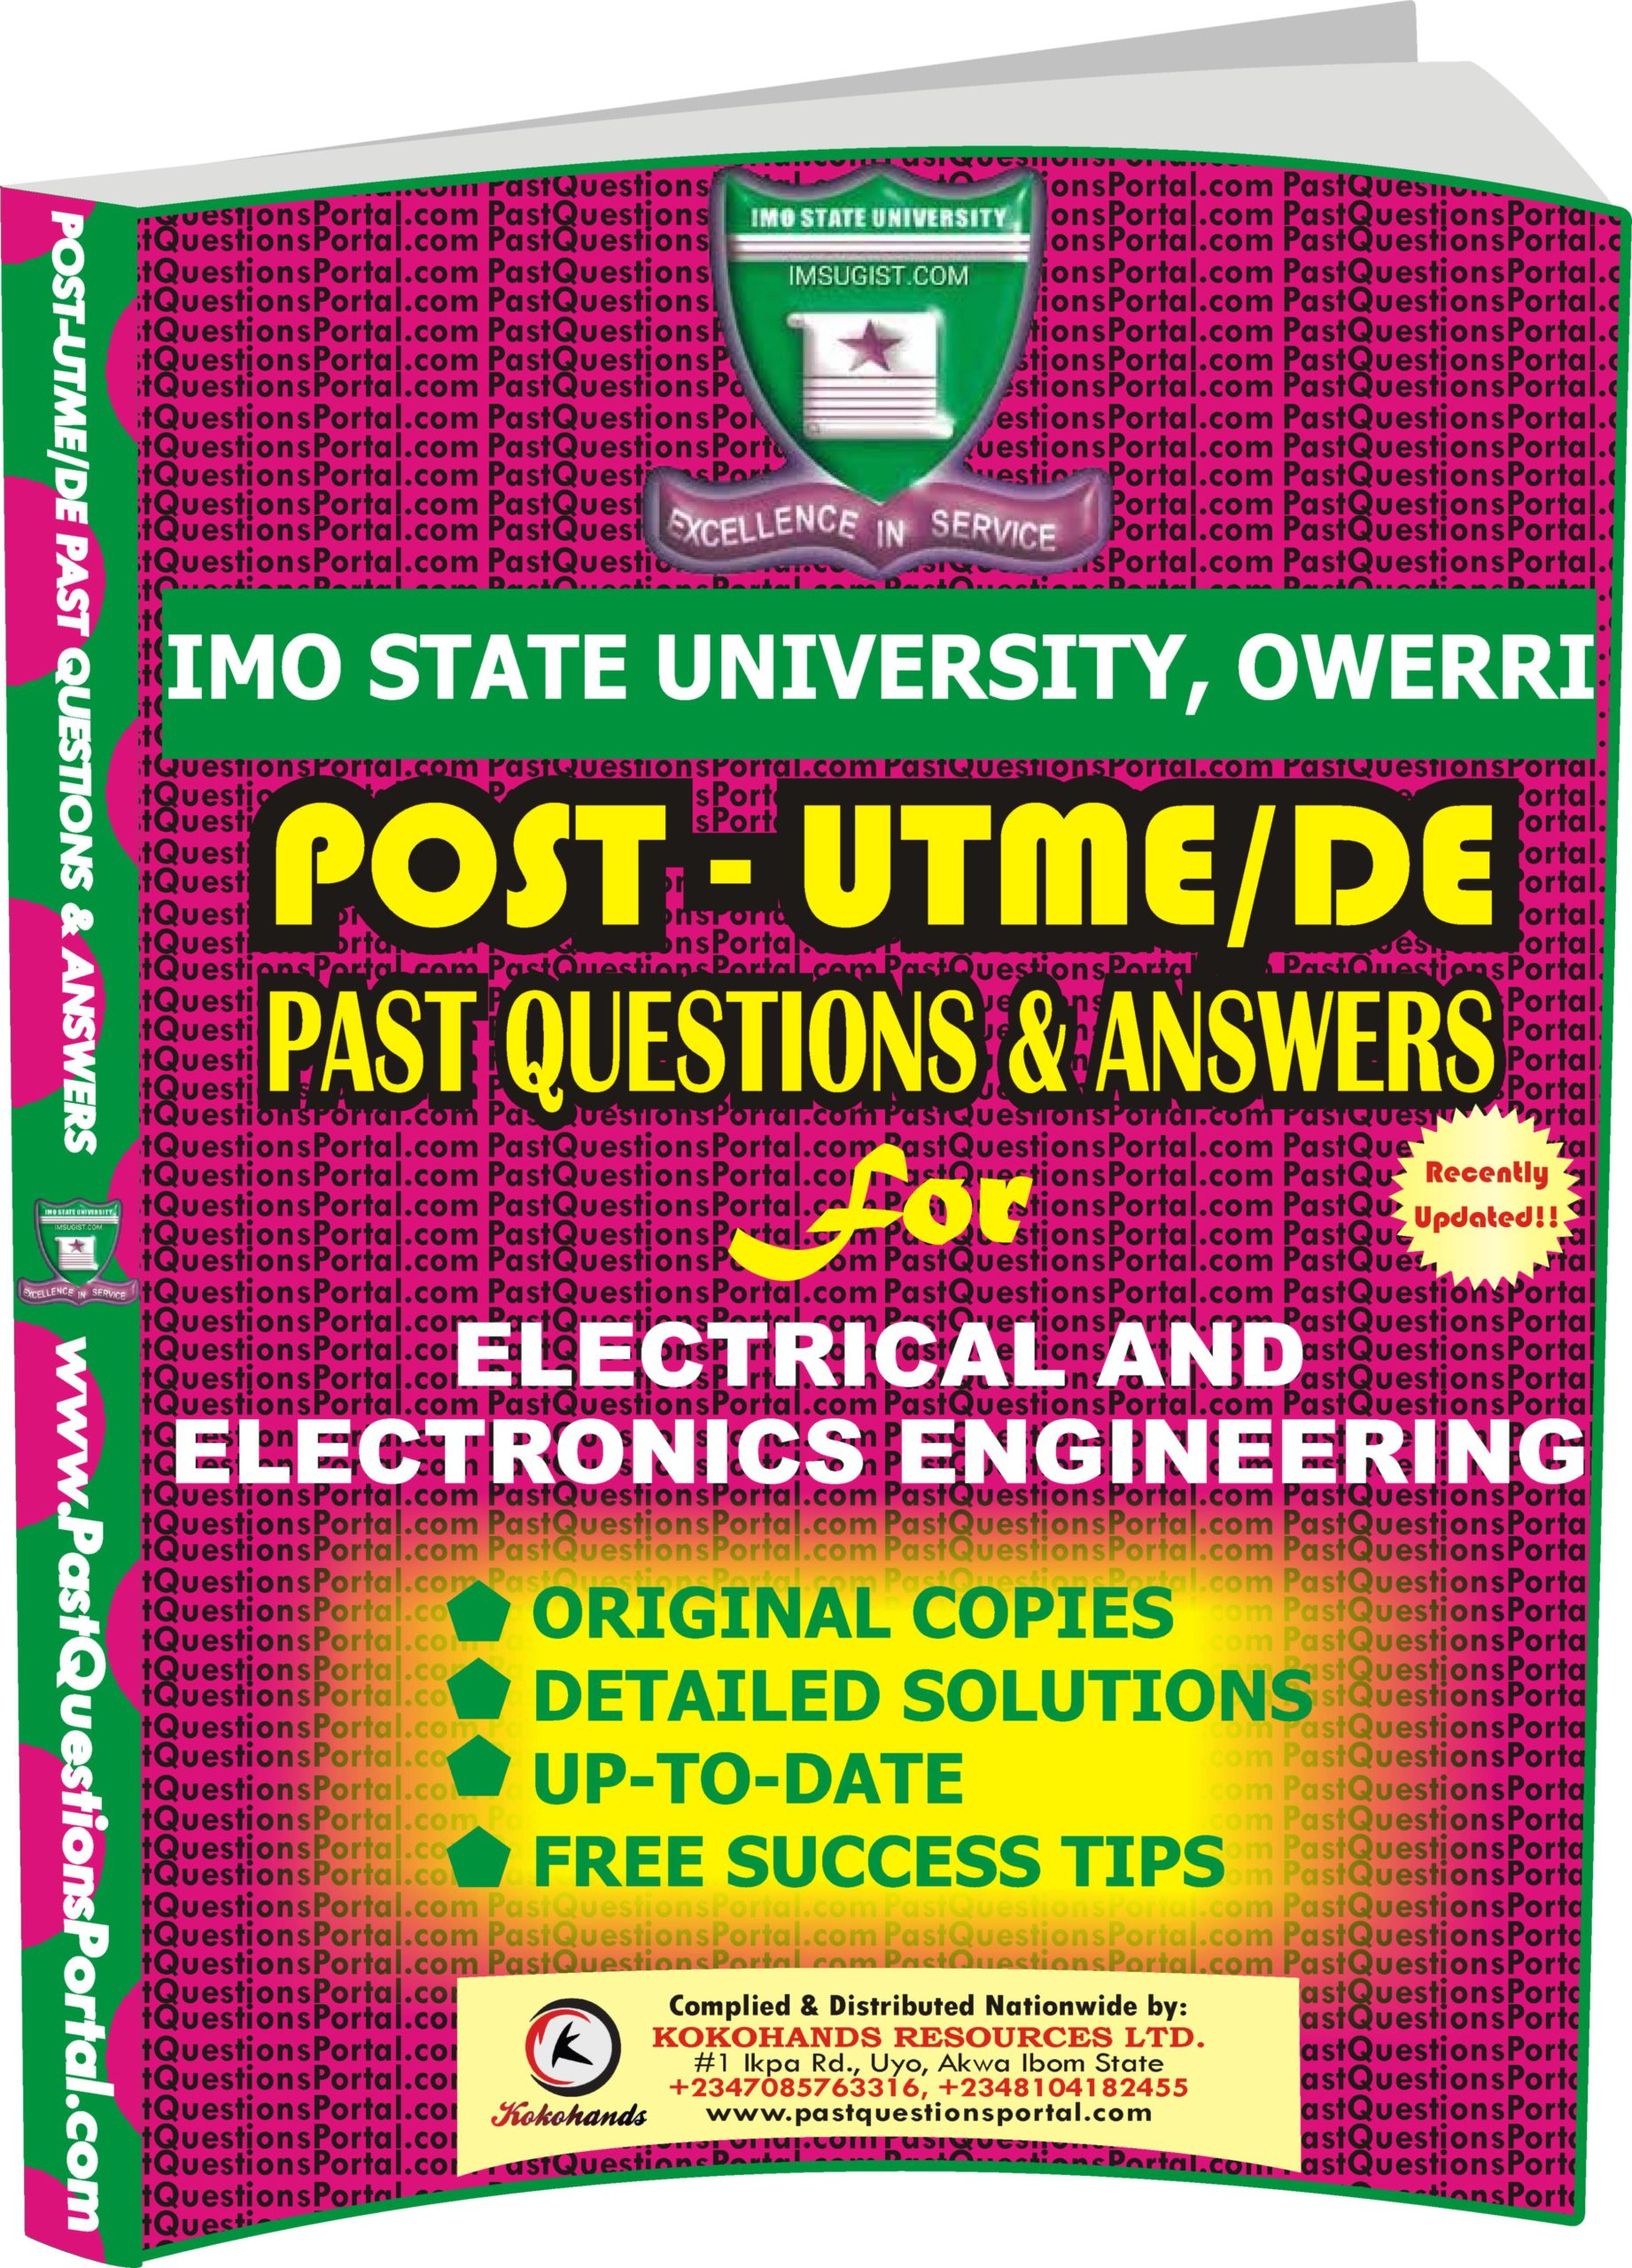 IMSU Post UTME Past Questions for Electrical and Electronics Engineering